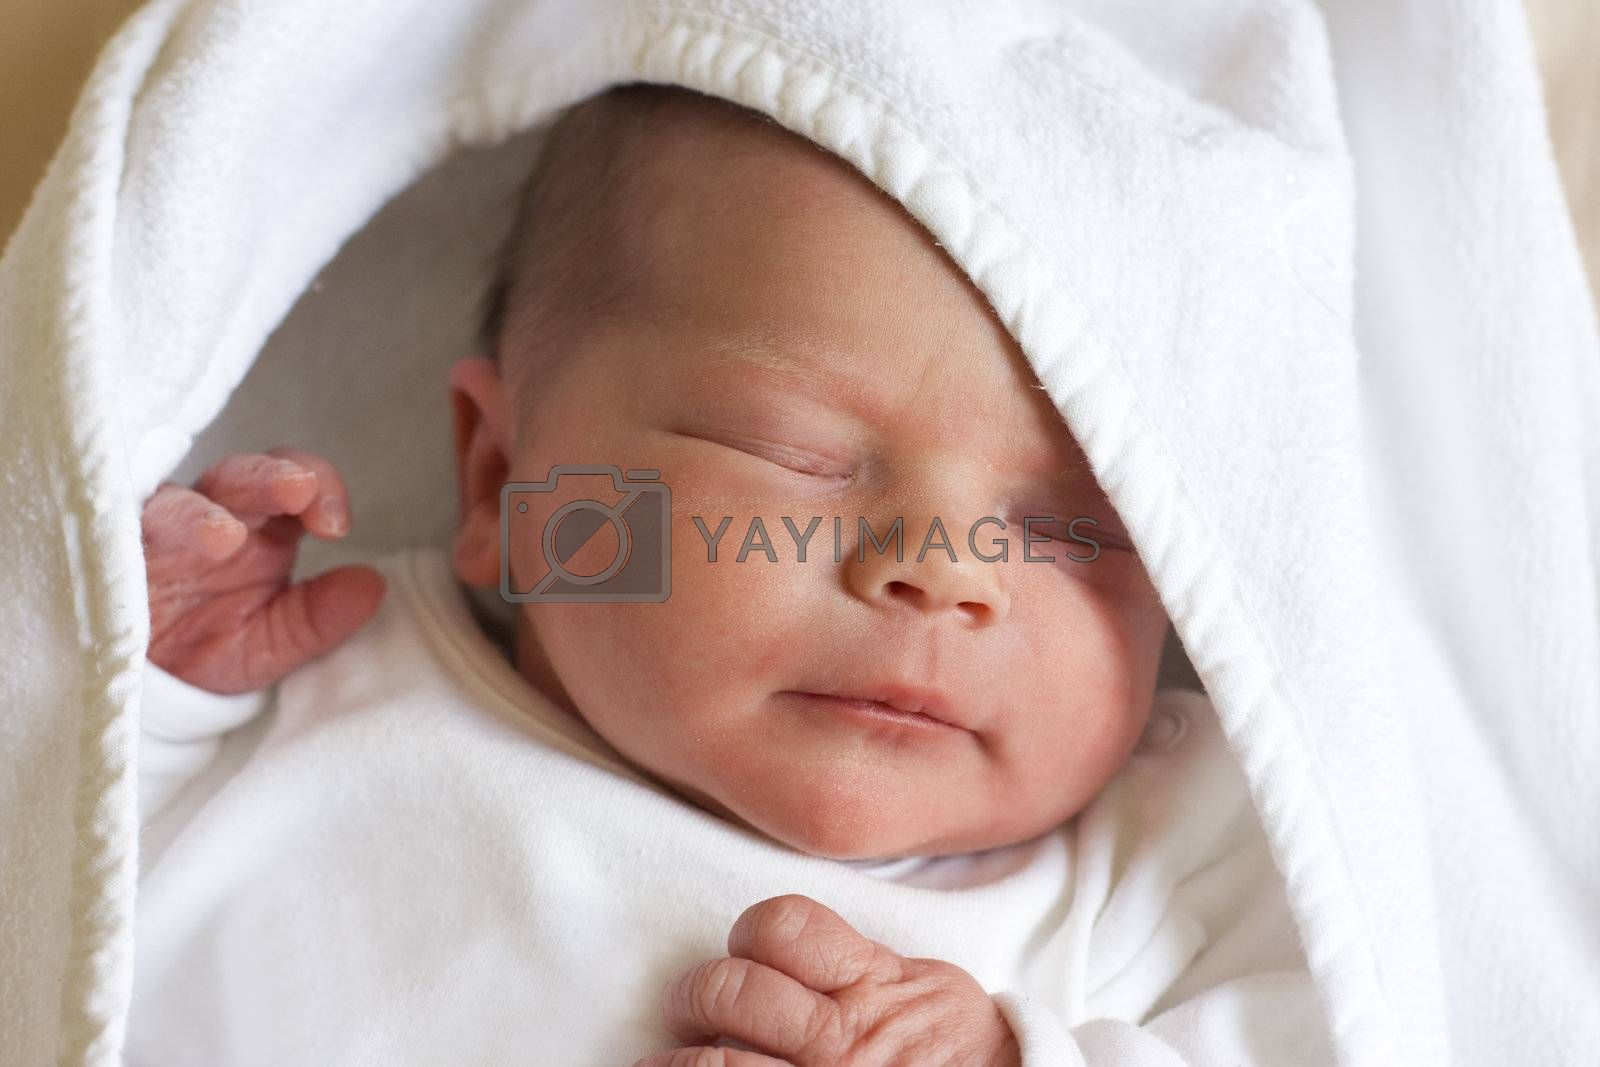 newborn baby, couple of hours old